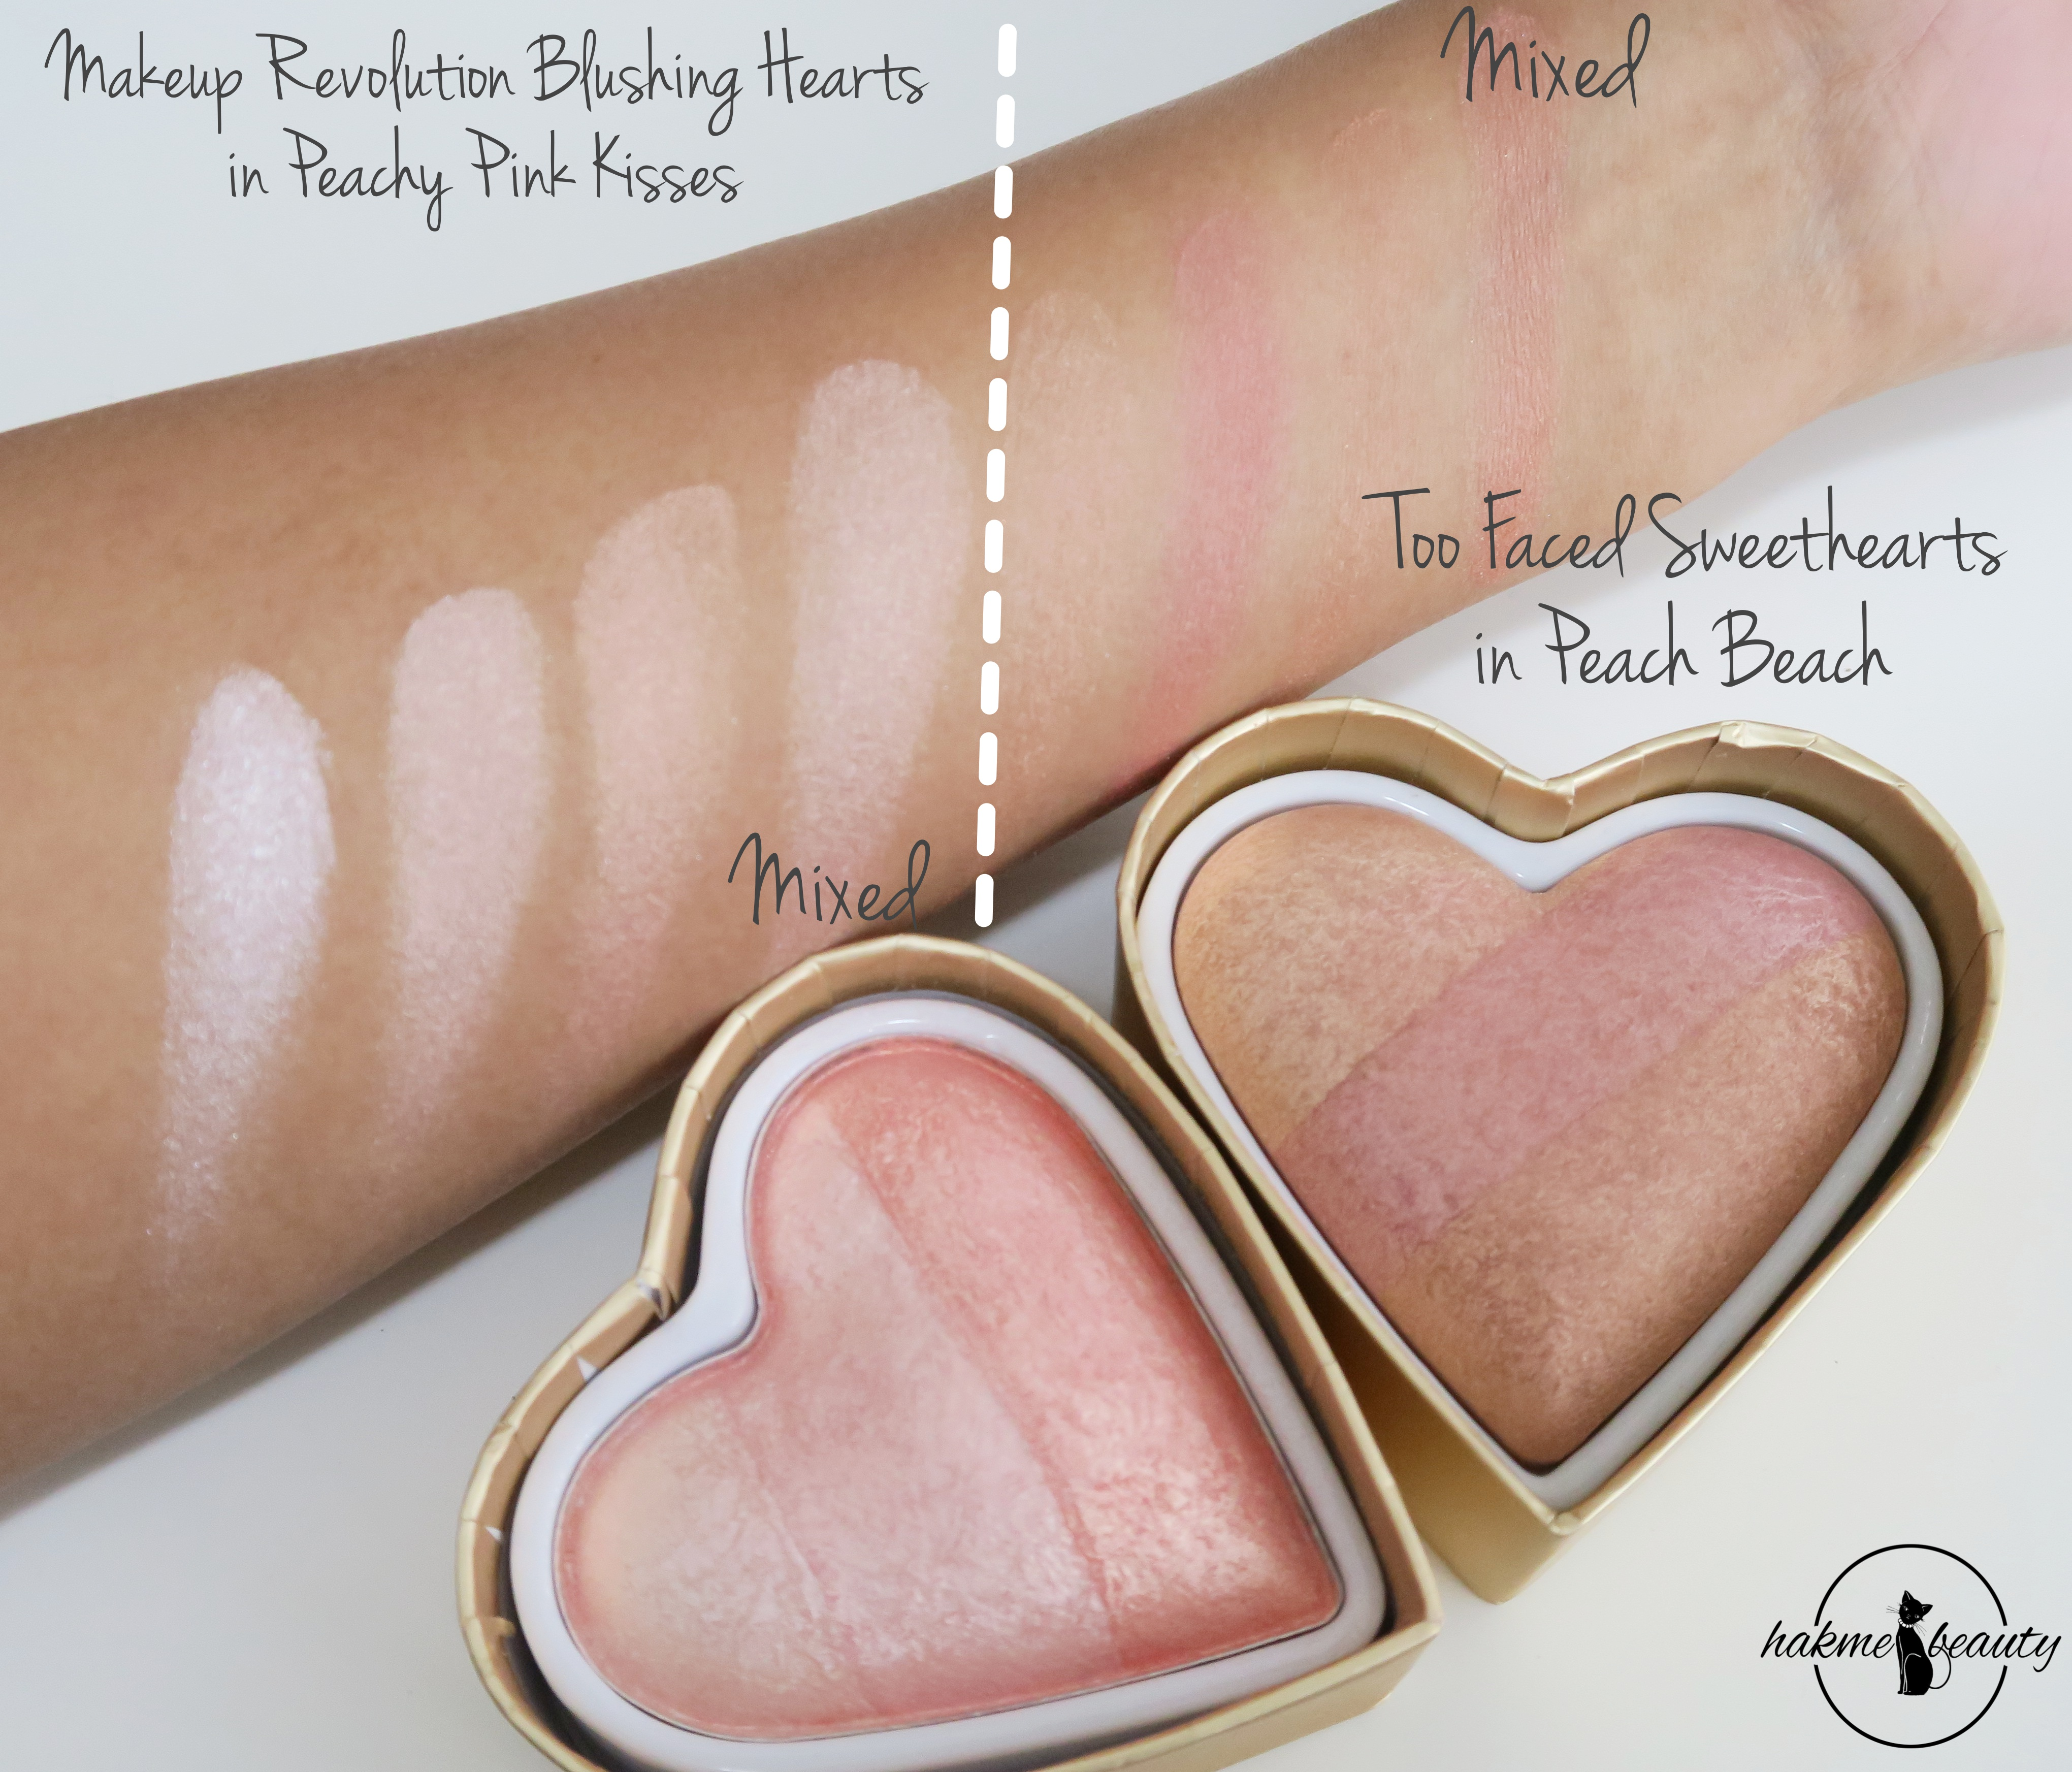 Too faced sweethearts vs makeup revolution blushing hearts